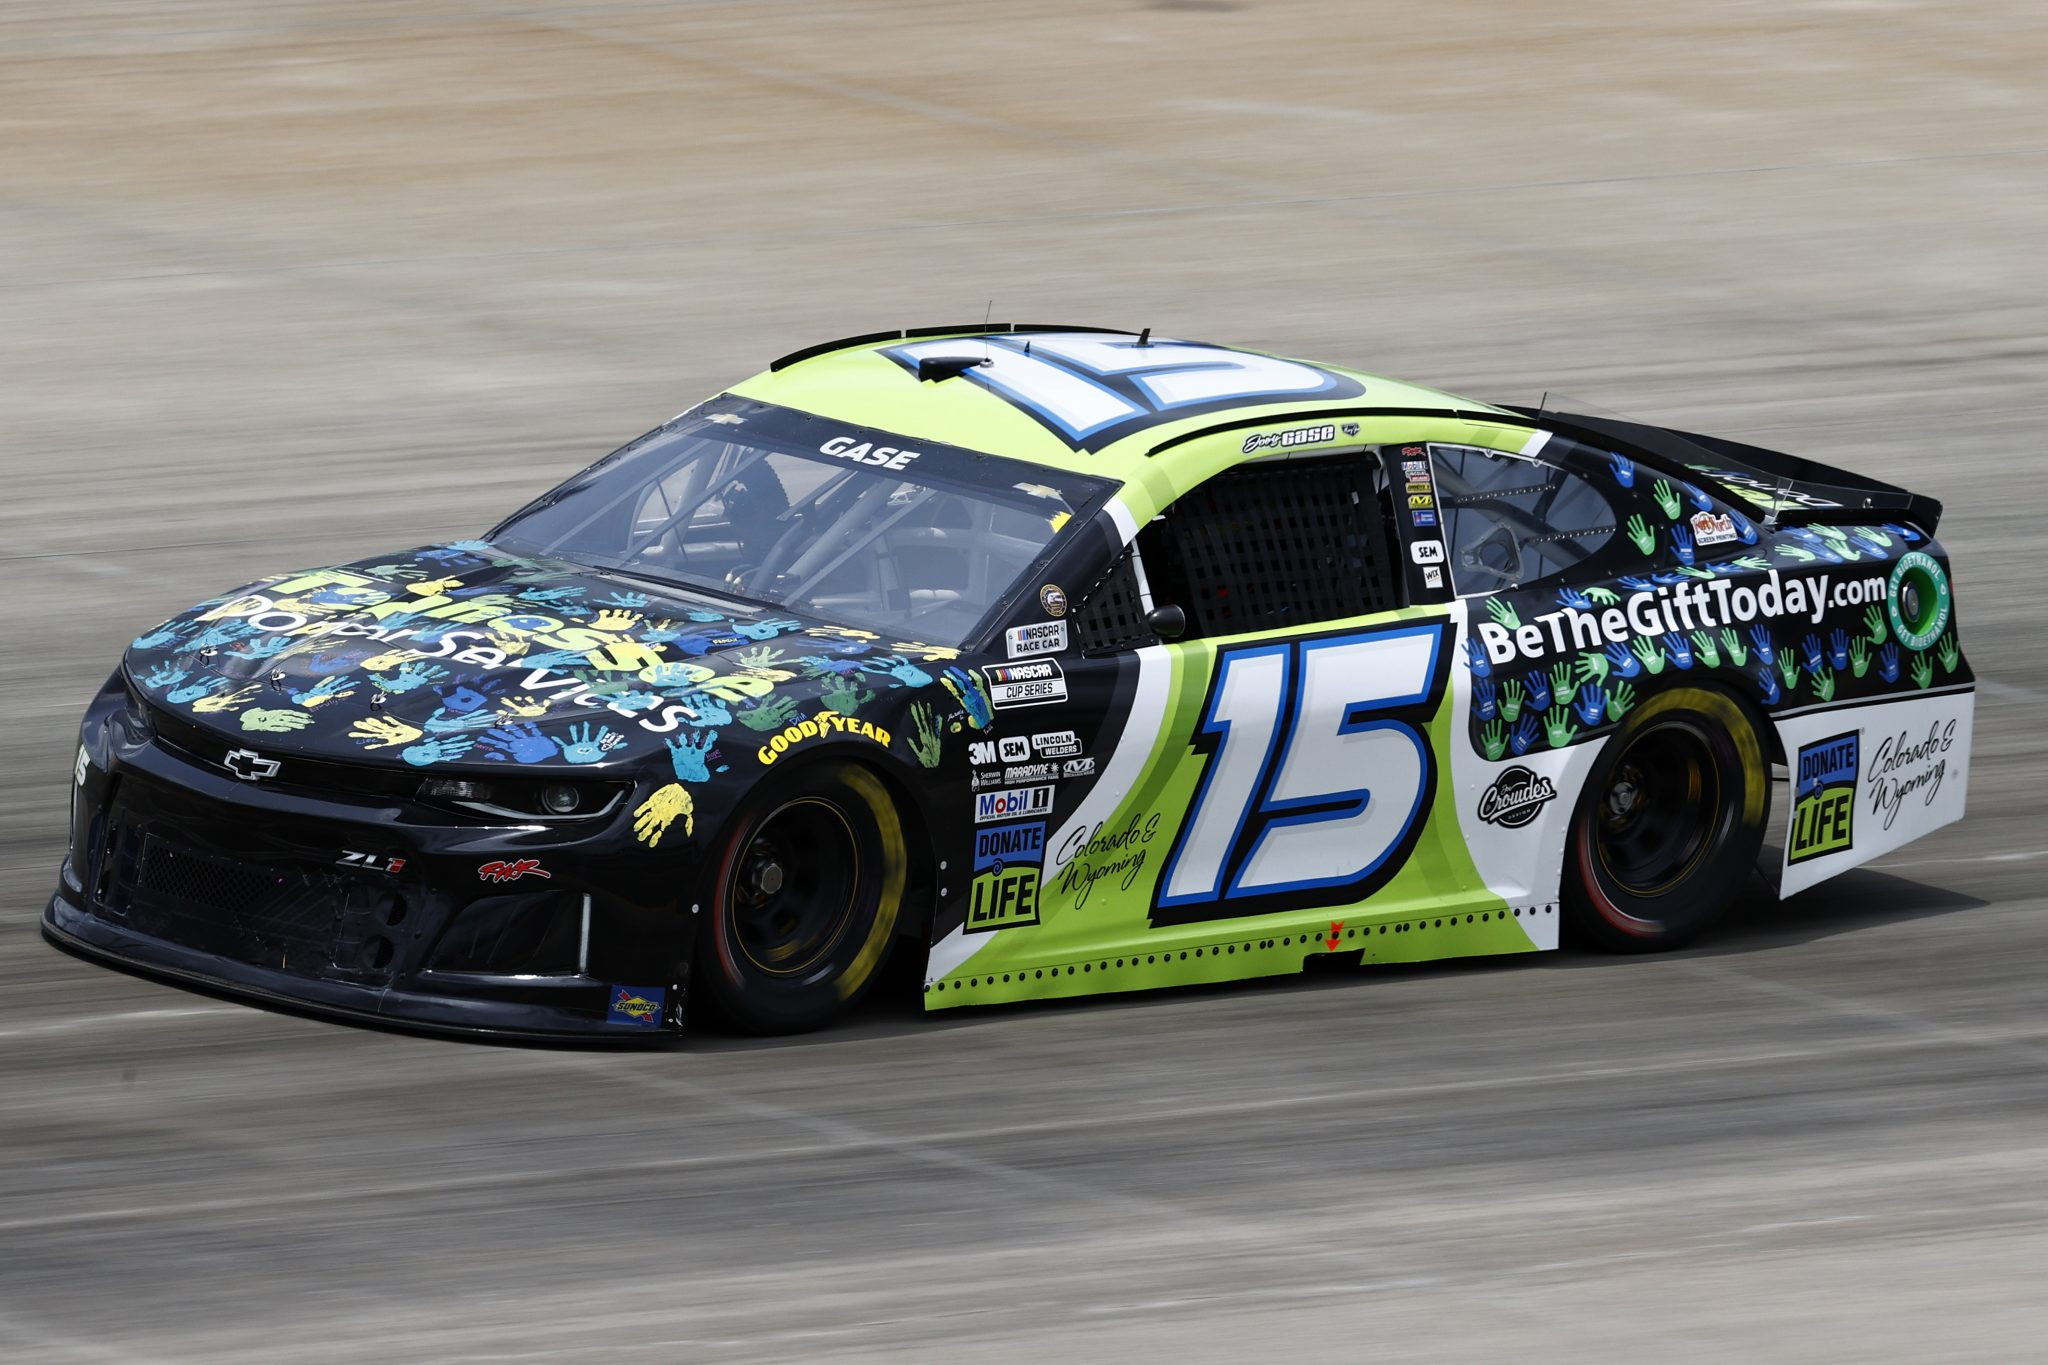 LEBANON, TENNESSEE - JUNE 19: Joey Gase, driver of the #15 Tennessee Donor Services/Donate Life Chevrolet, drives during practice for the NASCAR Cup Series Ally 400 at Nashville Superspeedway on June 19, 2021 in Lebanon, Tennessee. (Photo by Jared C. Tilton/Getty Images)   Getty Images